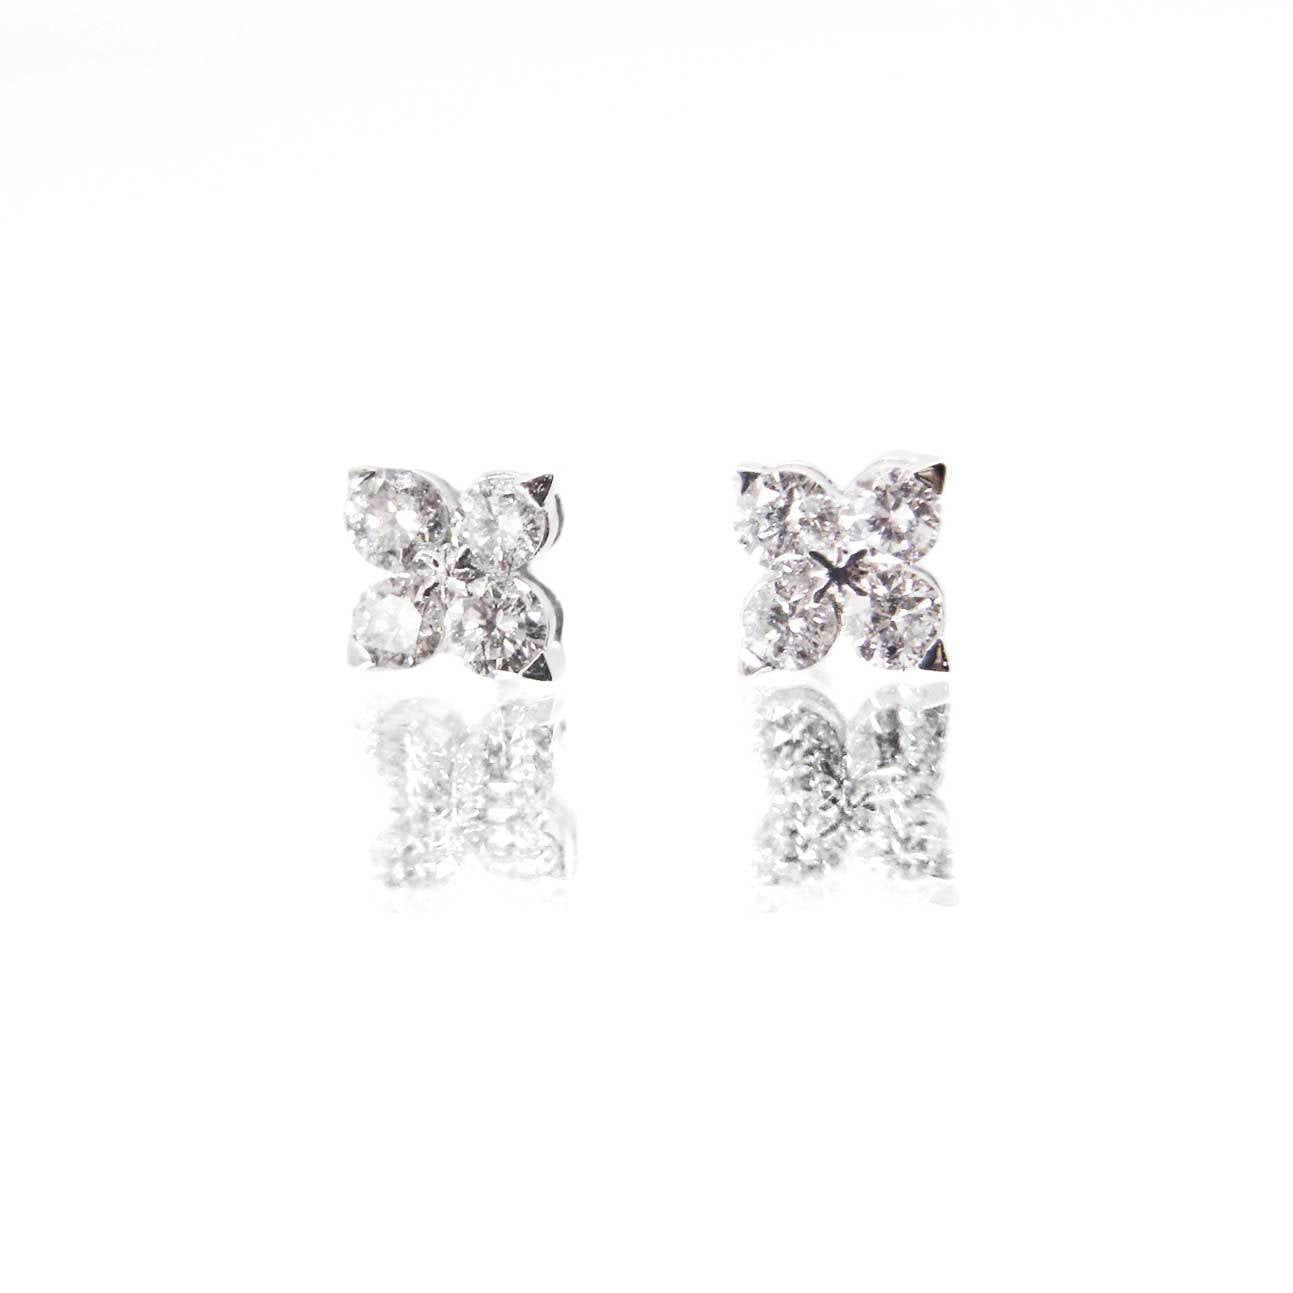 Diamond Series - Earrings - Allie Studs (0.2 Carats, 18K White Gold)